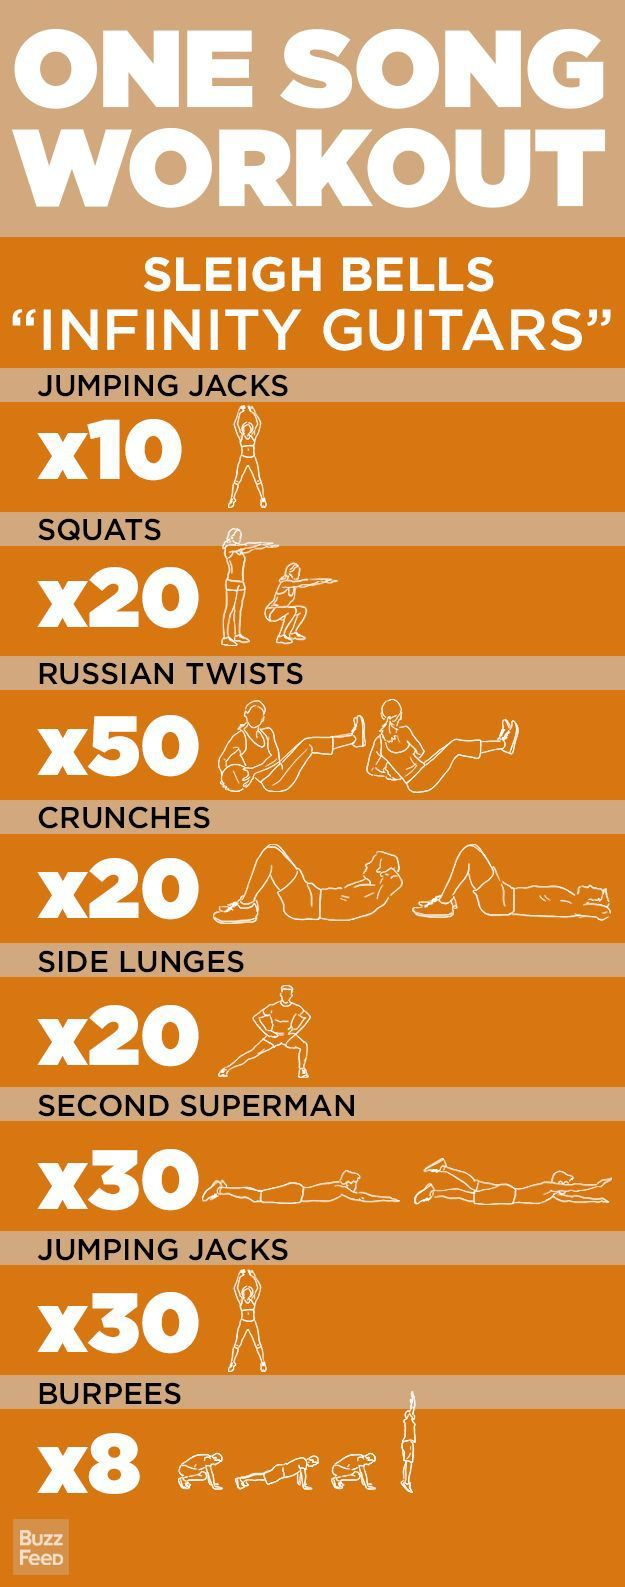 5 One-Song Workouts health fit